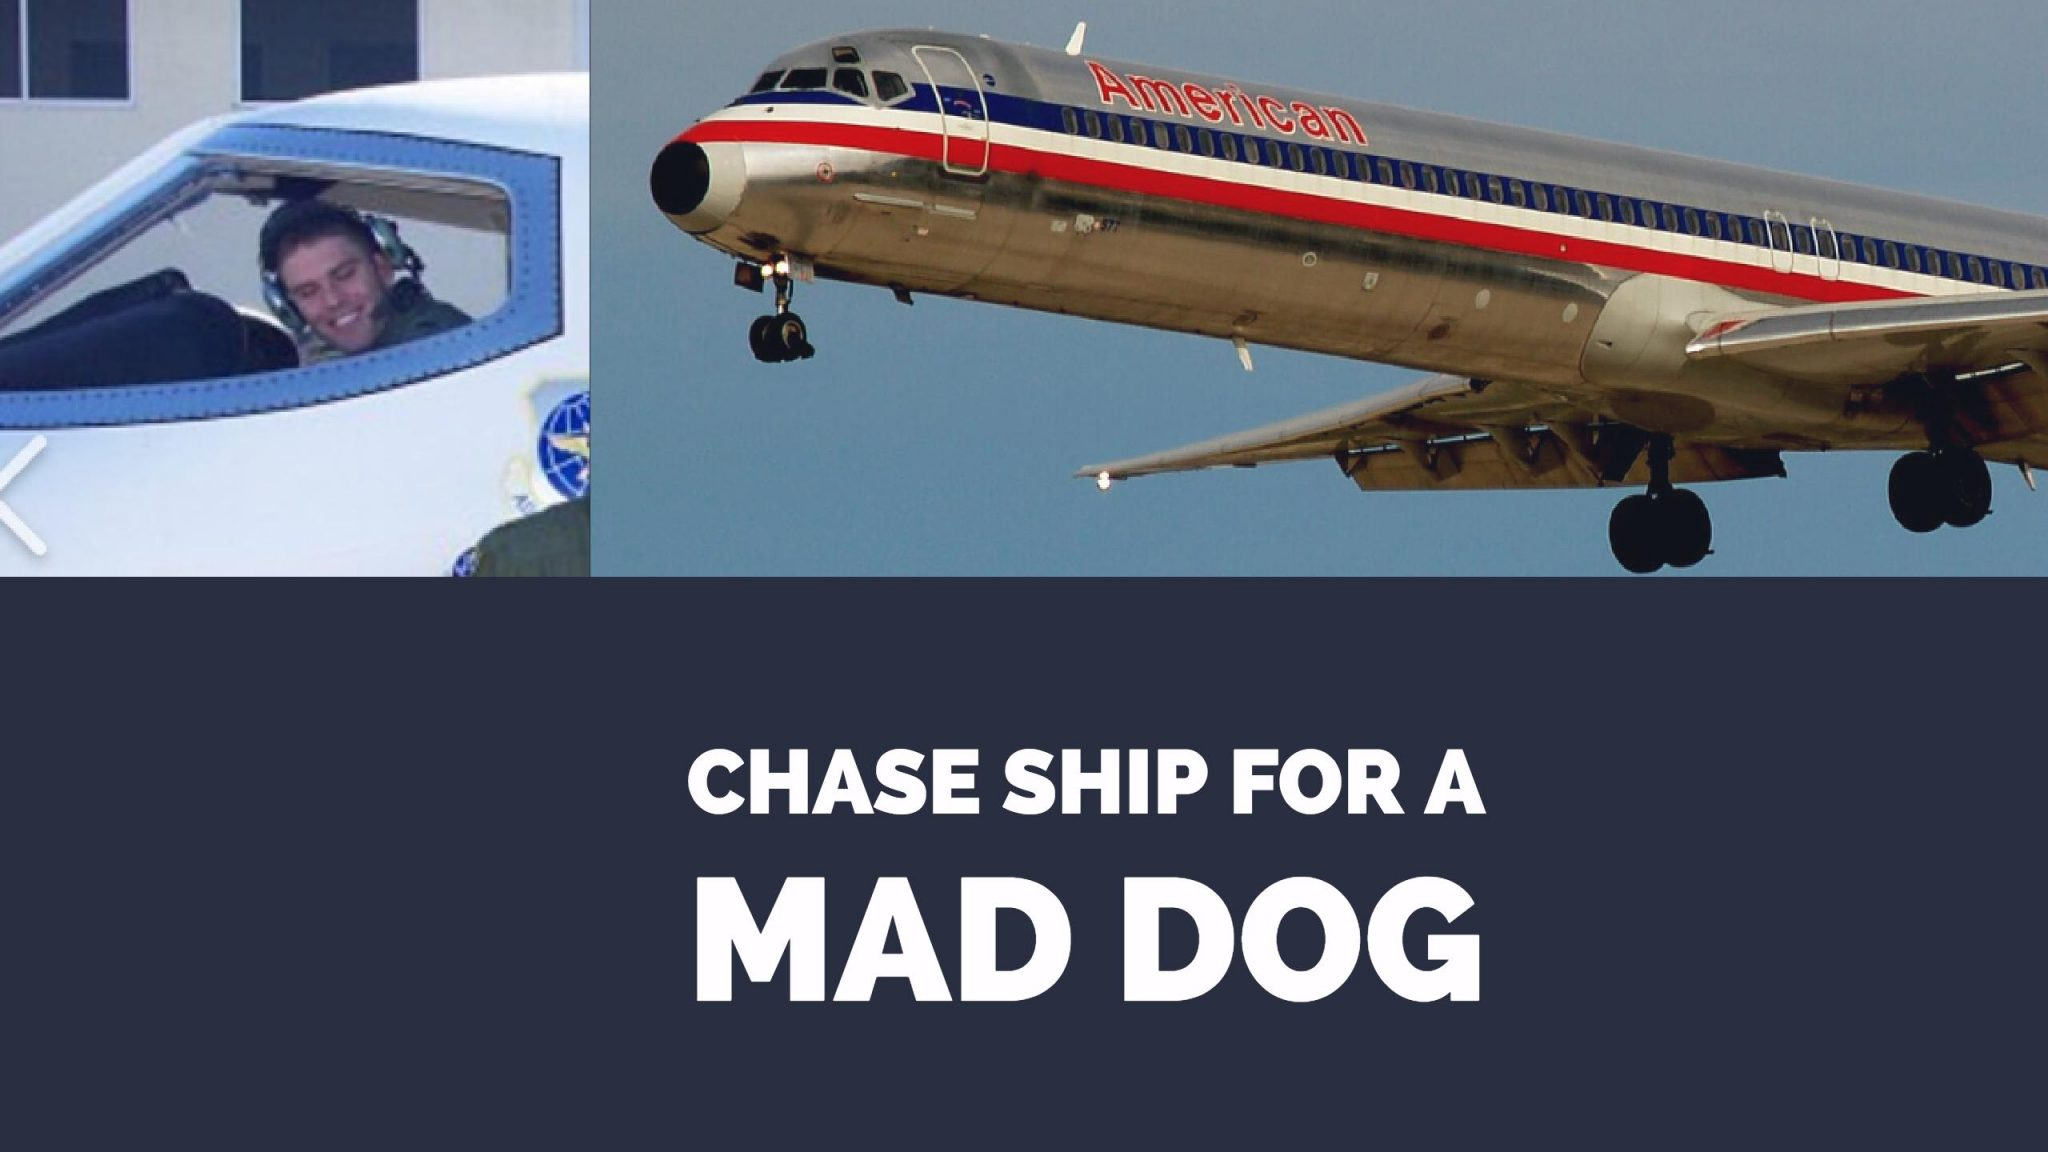 I Was A Chase Ship For An American Airlines MD-80 With A Gear Problem